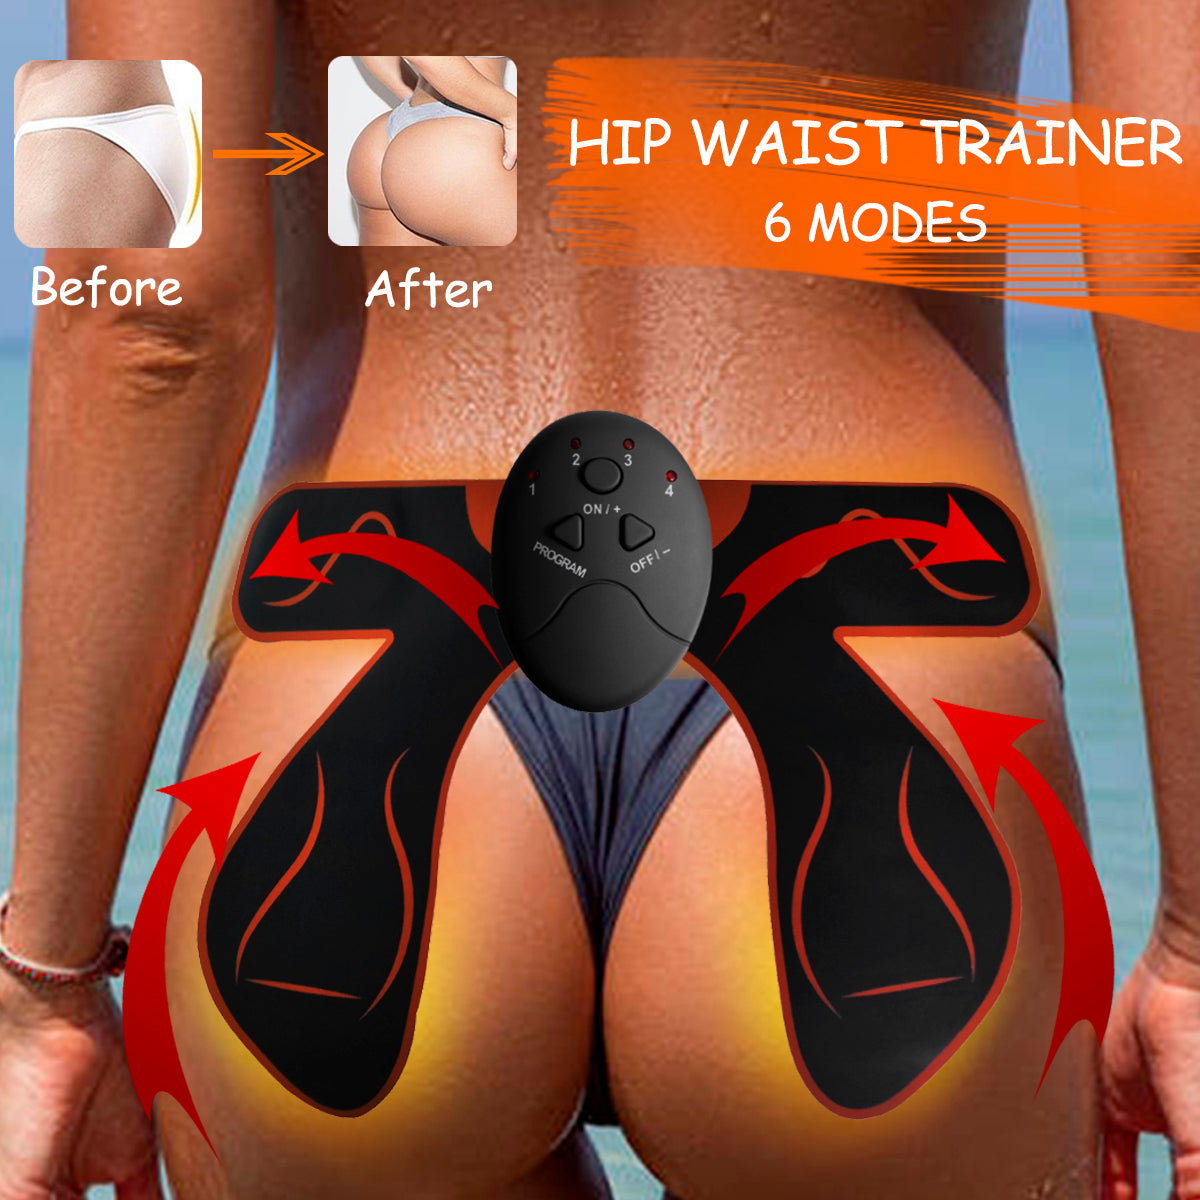 Smart Hip Trainer Bum Lift Up Electric Vibration Muscle Stimulator